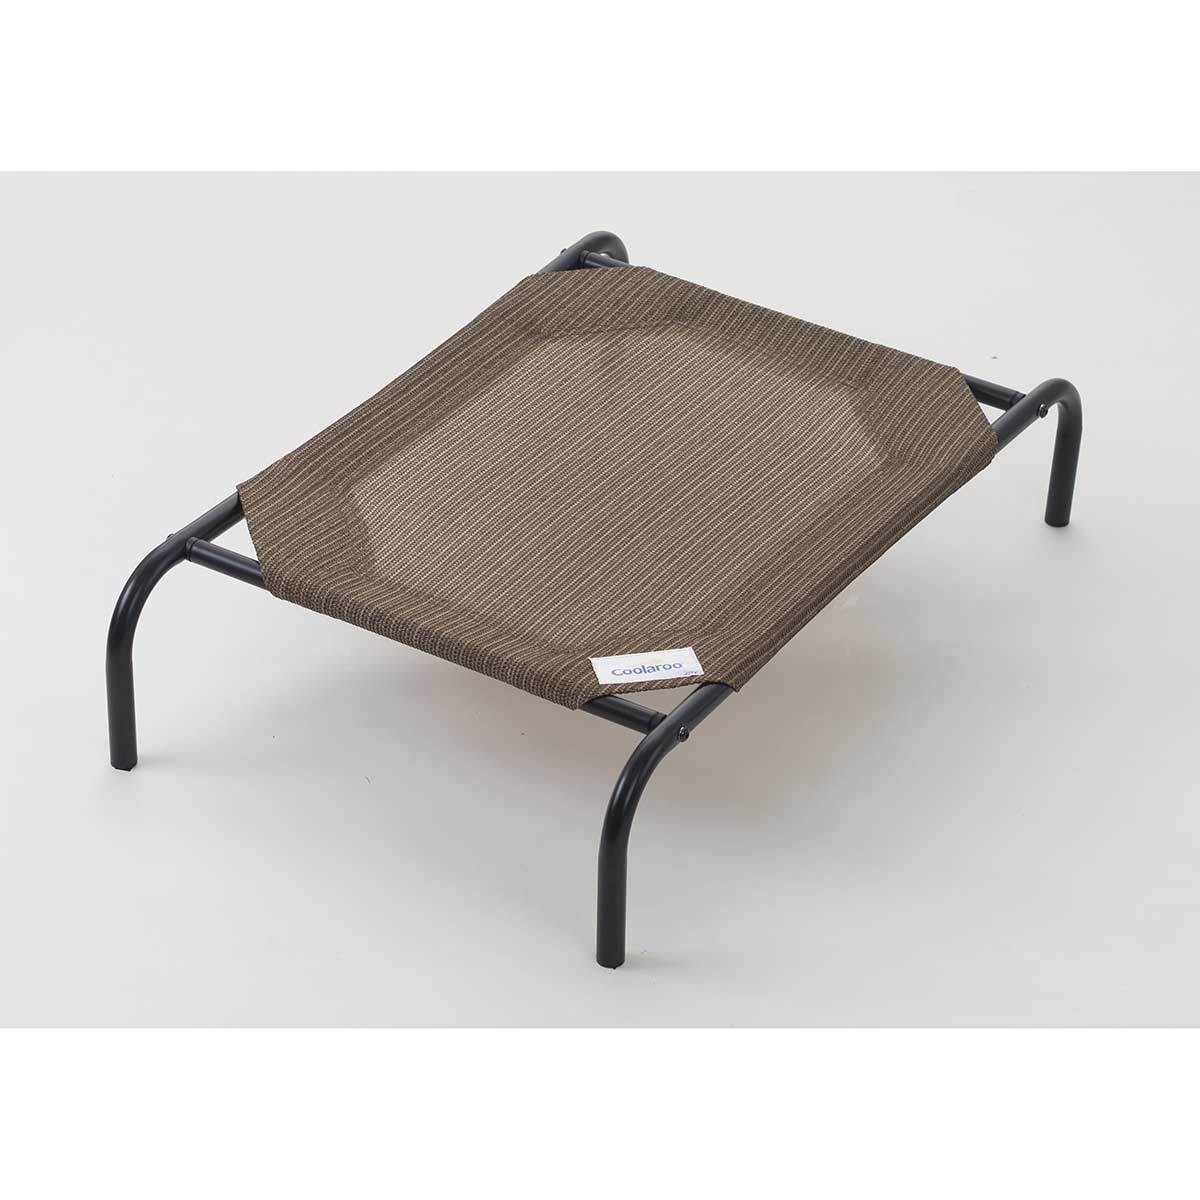 Coolaroo Medium Pet Bed Nutmeg 43.37 inches by 25.63 inches